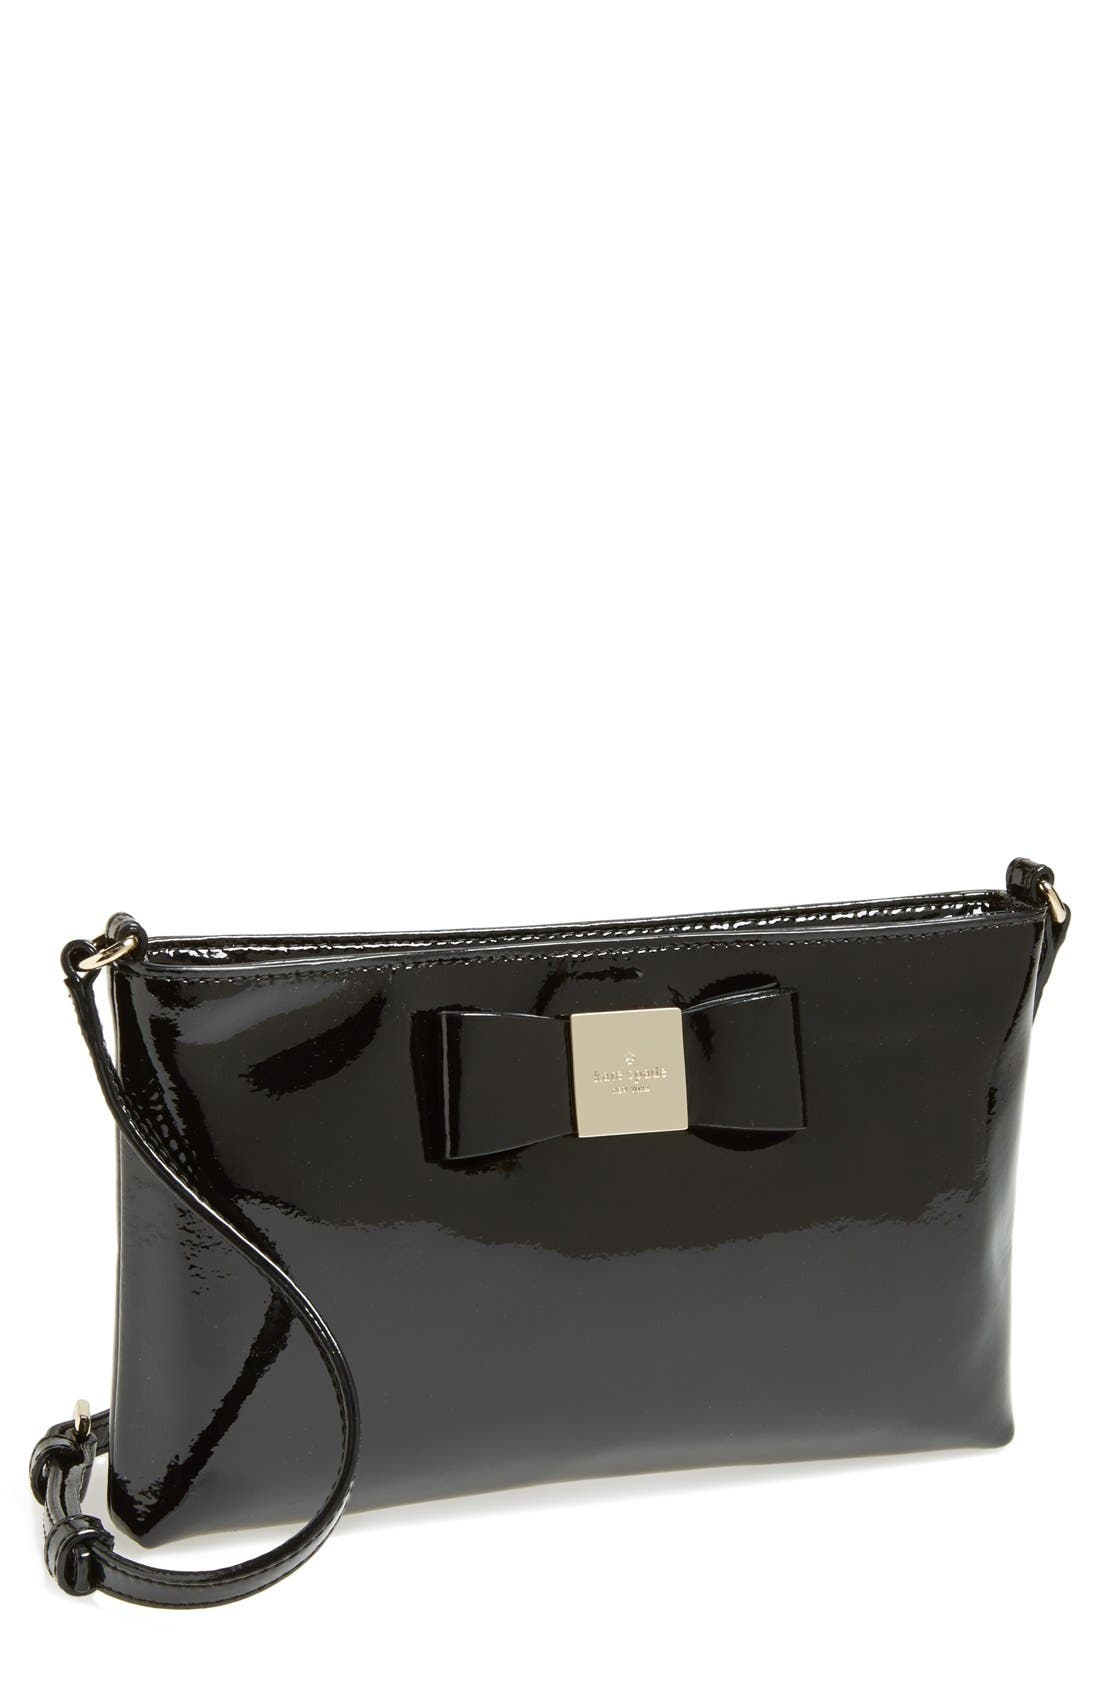 Main Image - kate spade new york 'maree' patent leather crossbody bag